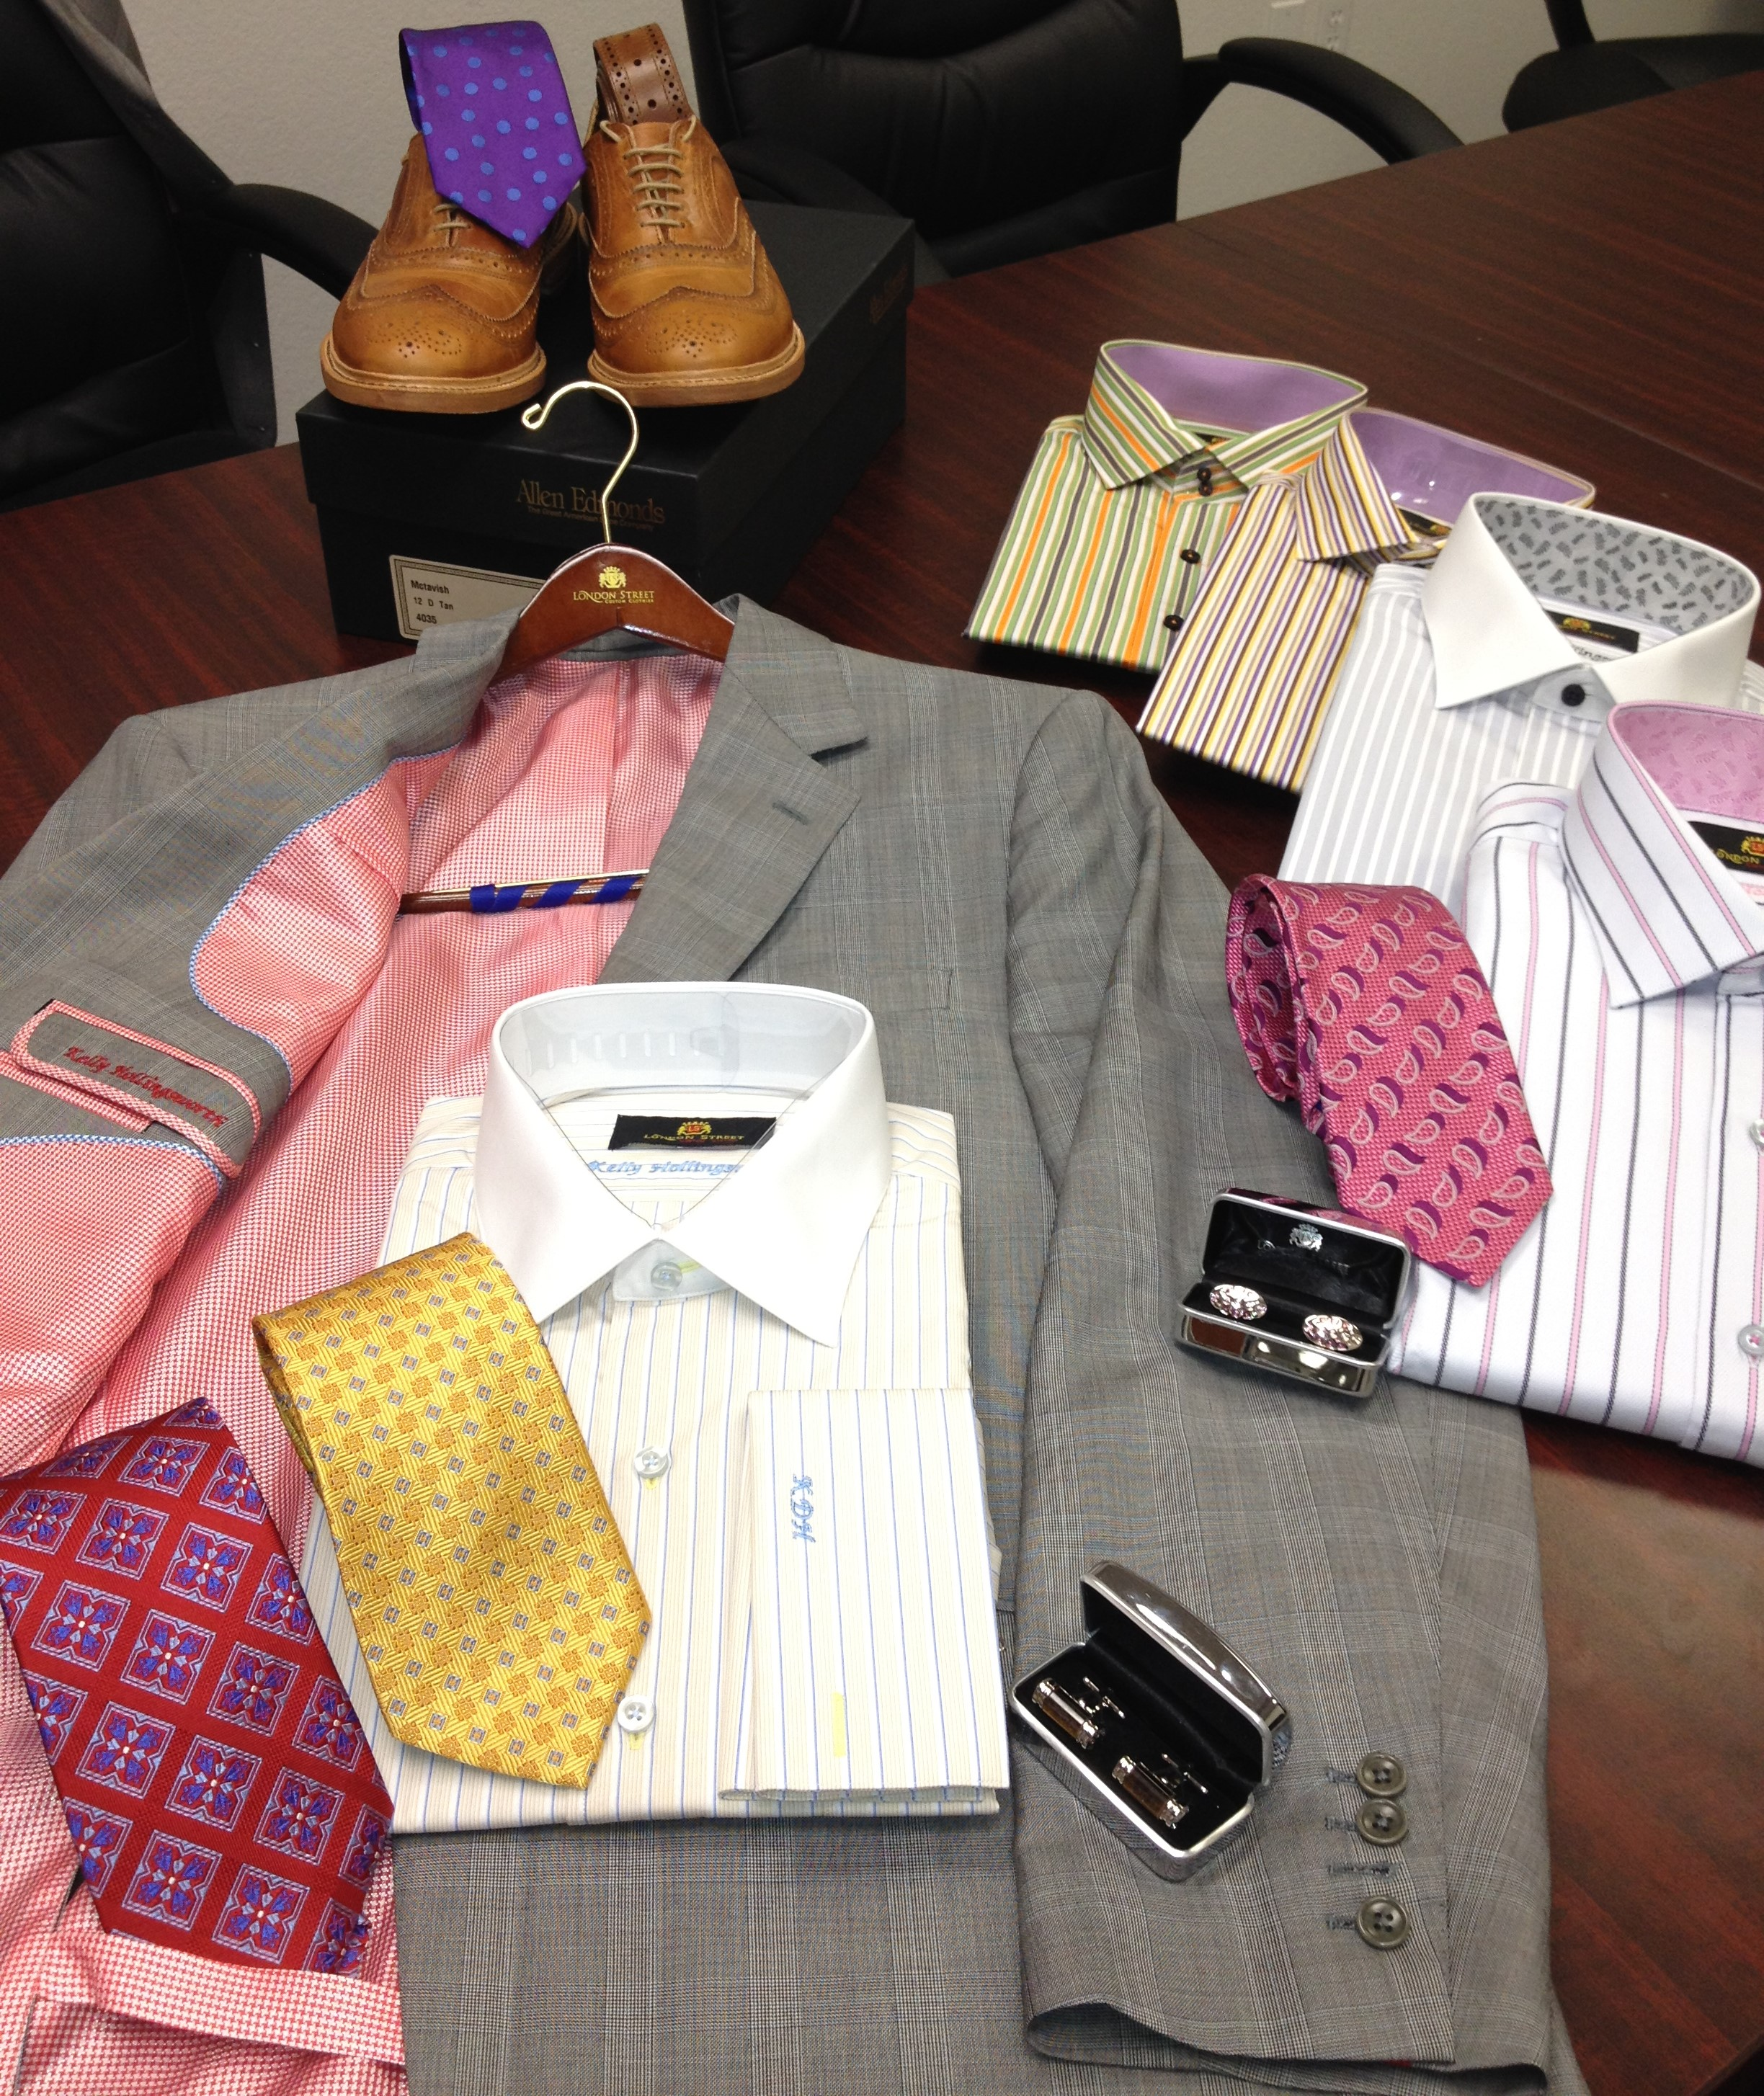 London Street delivers your handcrafted suits, shirts, and accessories to your home or office.